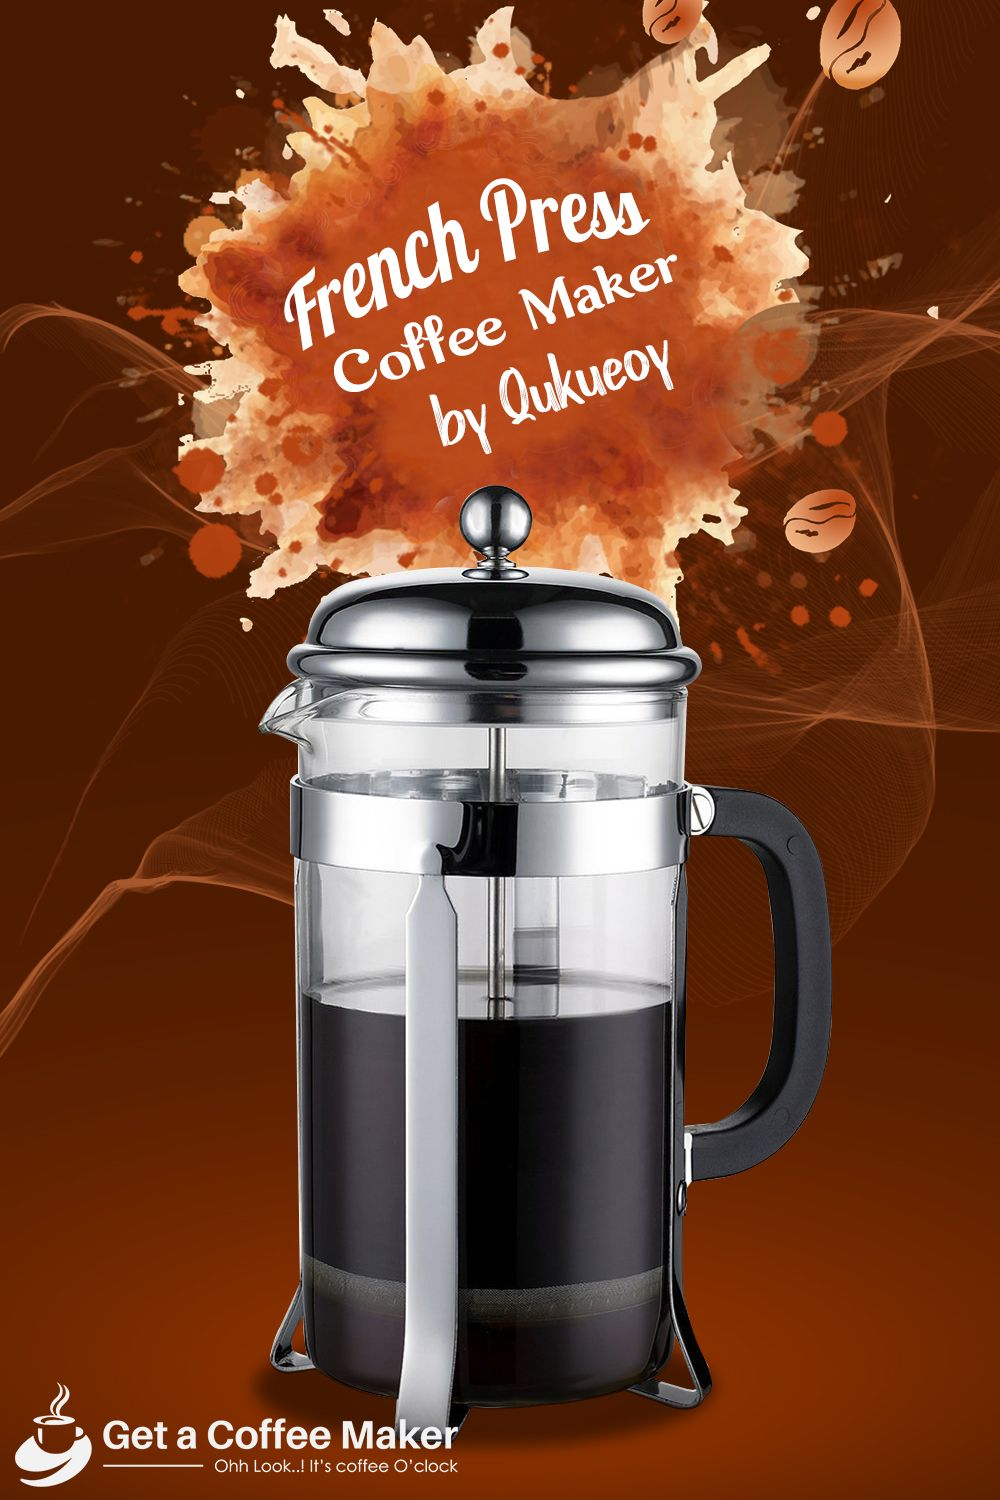 Top 10 French Press Coffee Makers (Dec. 2019) Reviews